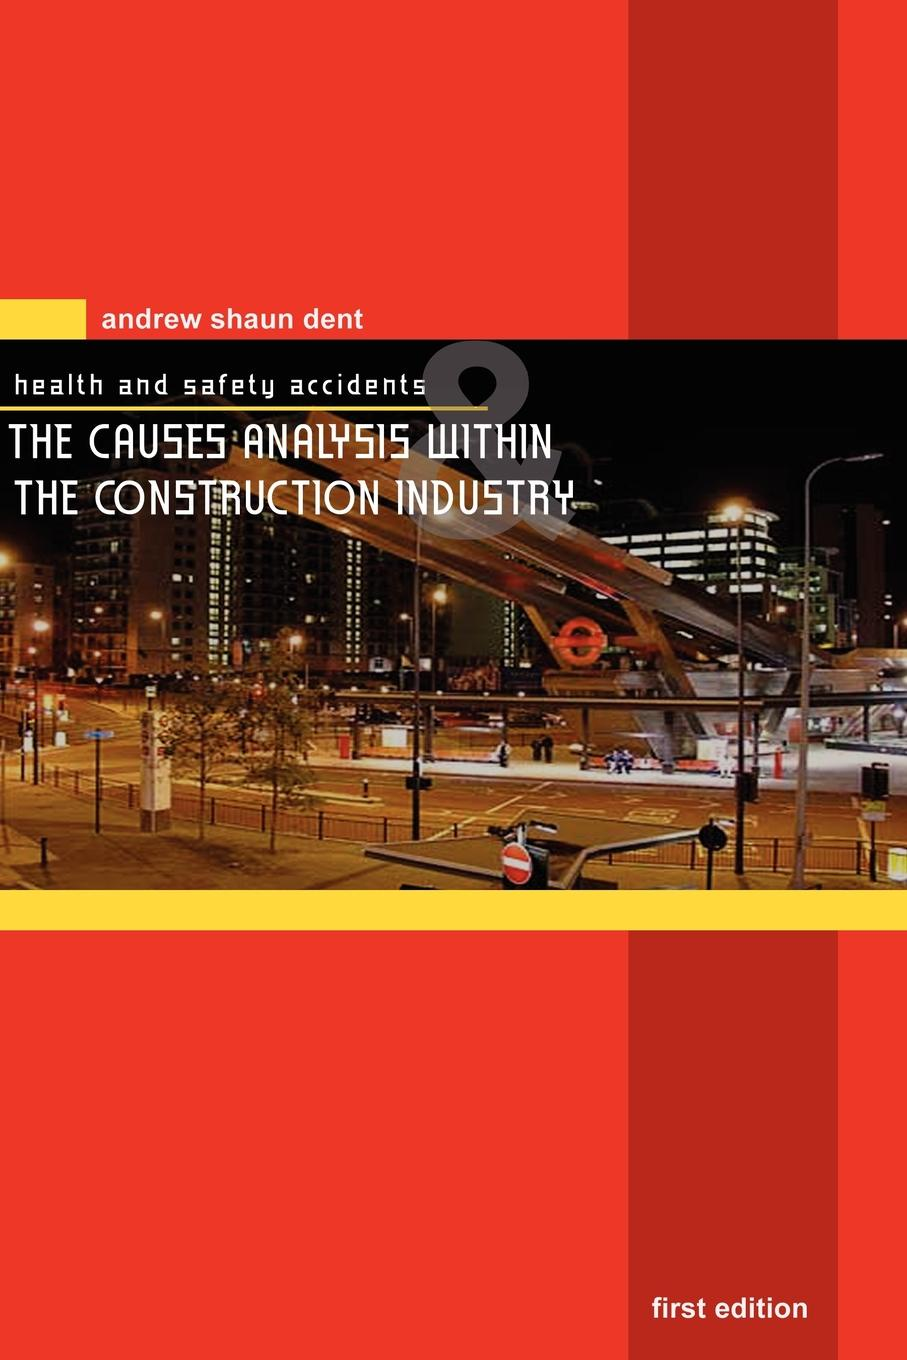 Andrew Shaun Health and Safety Accidents and The Causes Analysis within the Construction Industry cooper rachel constructing futures industry leaders and futures thinking in construction isbn 9781444327847